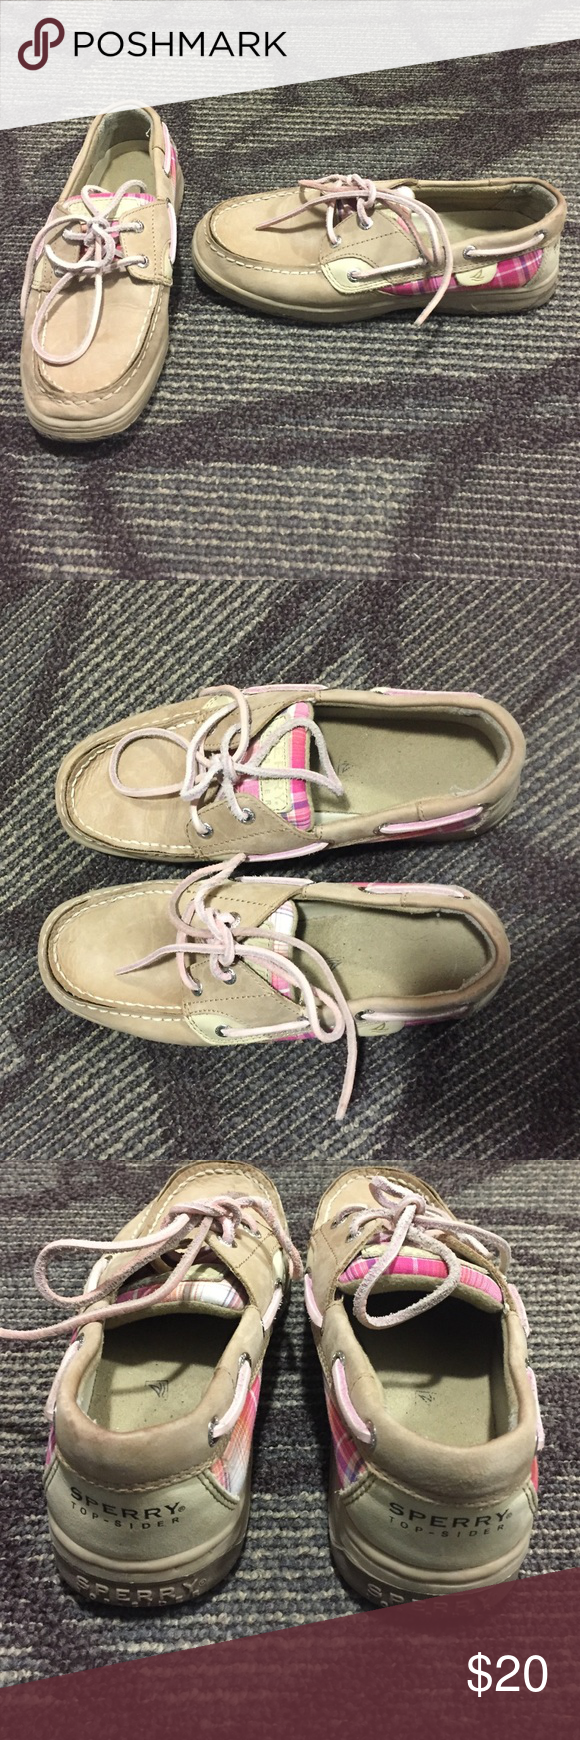 Pink plaid kids 3.5 sperrys Kids size 3.5 good used condition- only worn a handful of times. Designed with pink plaid details. Sperry top- spider Shoes